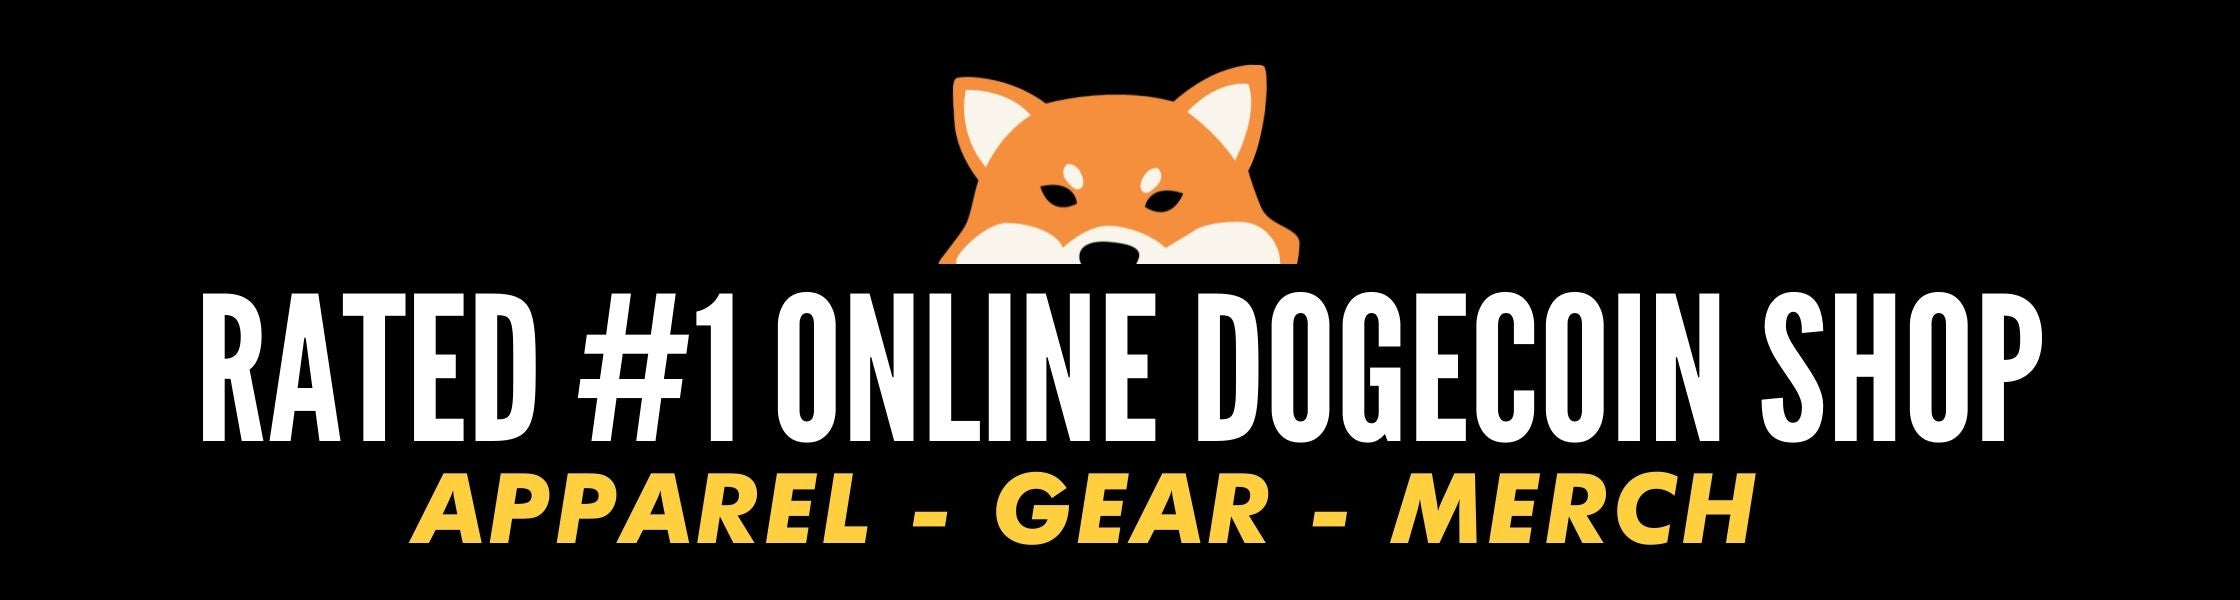 Doge Shirts and Merch - AboveWallStreet